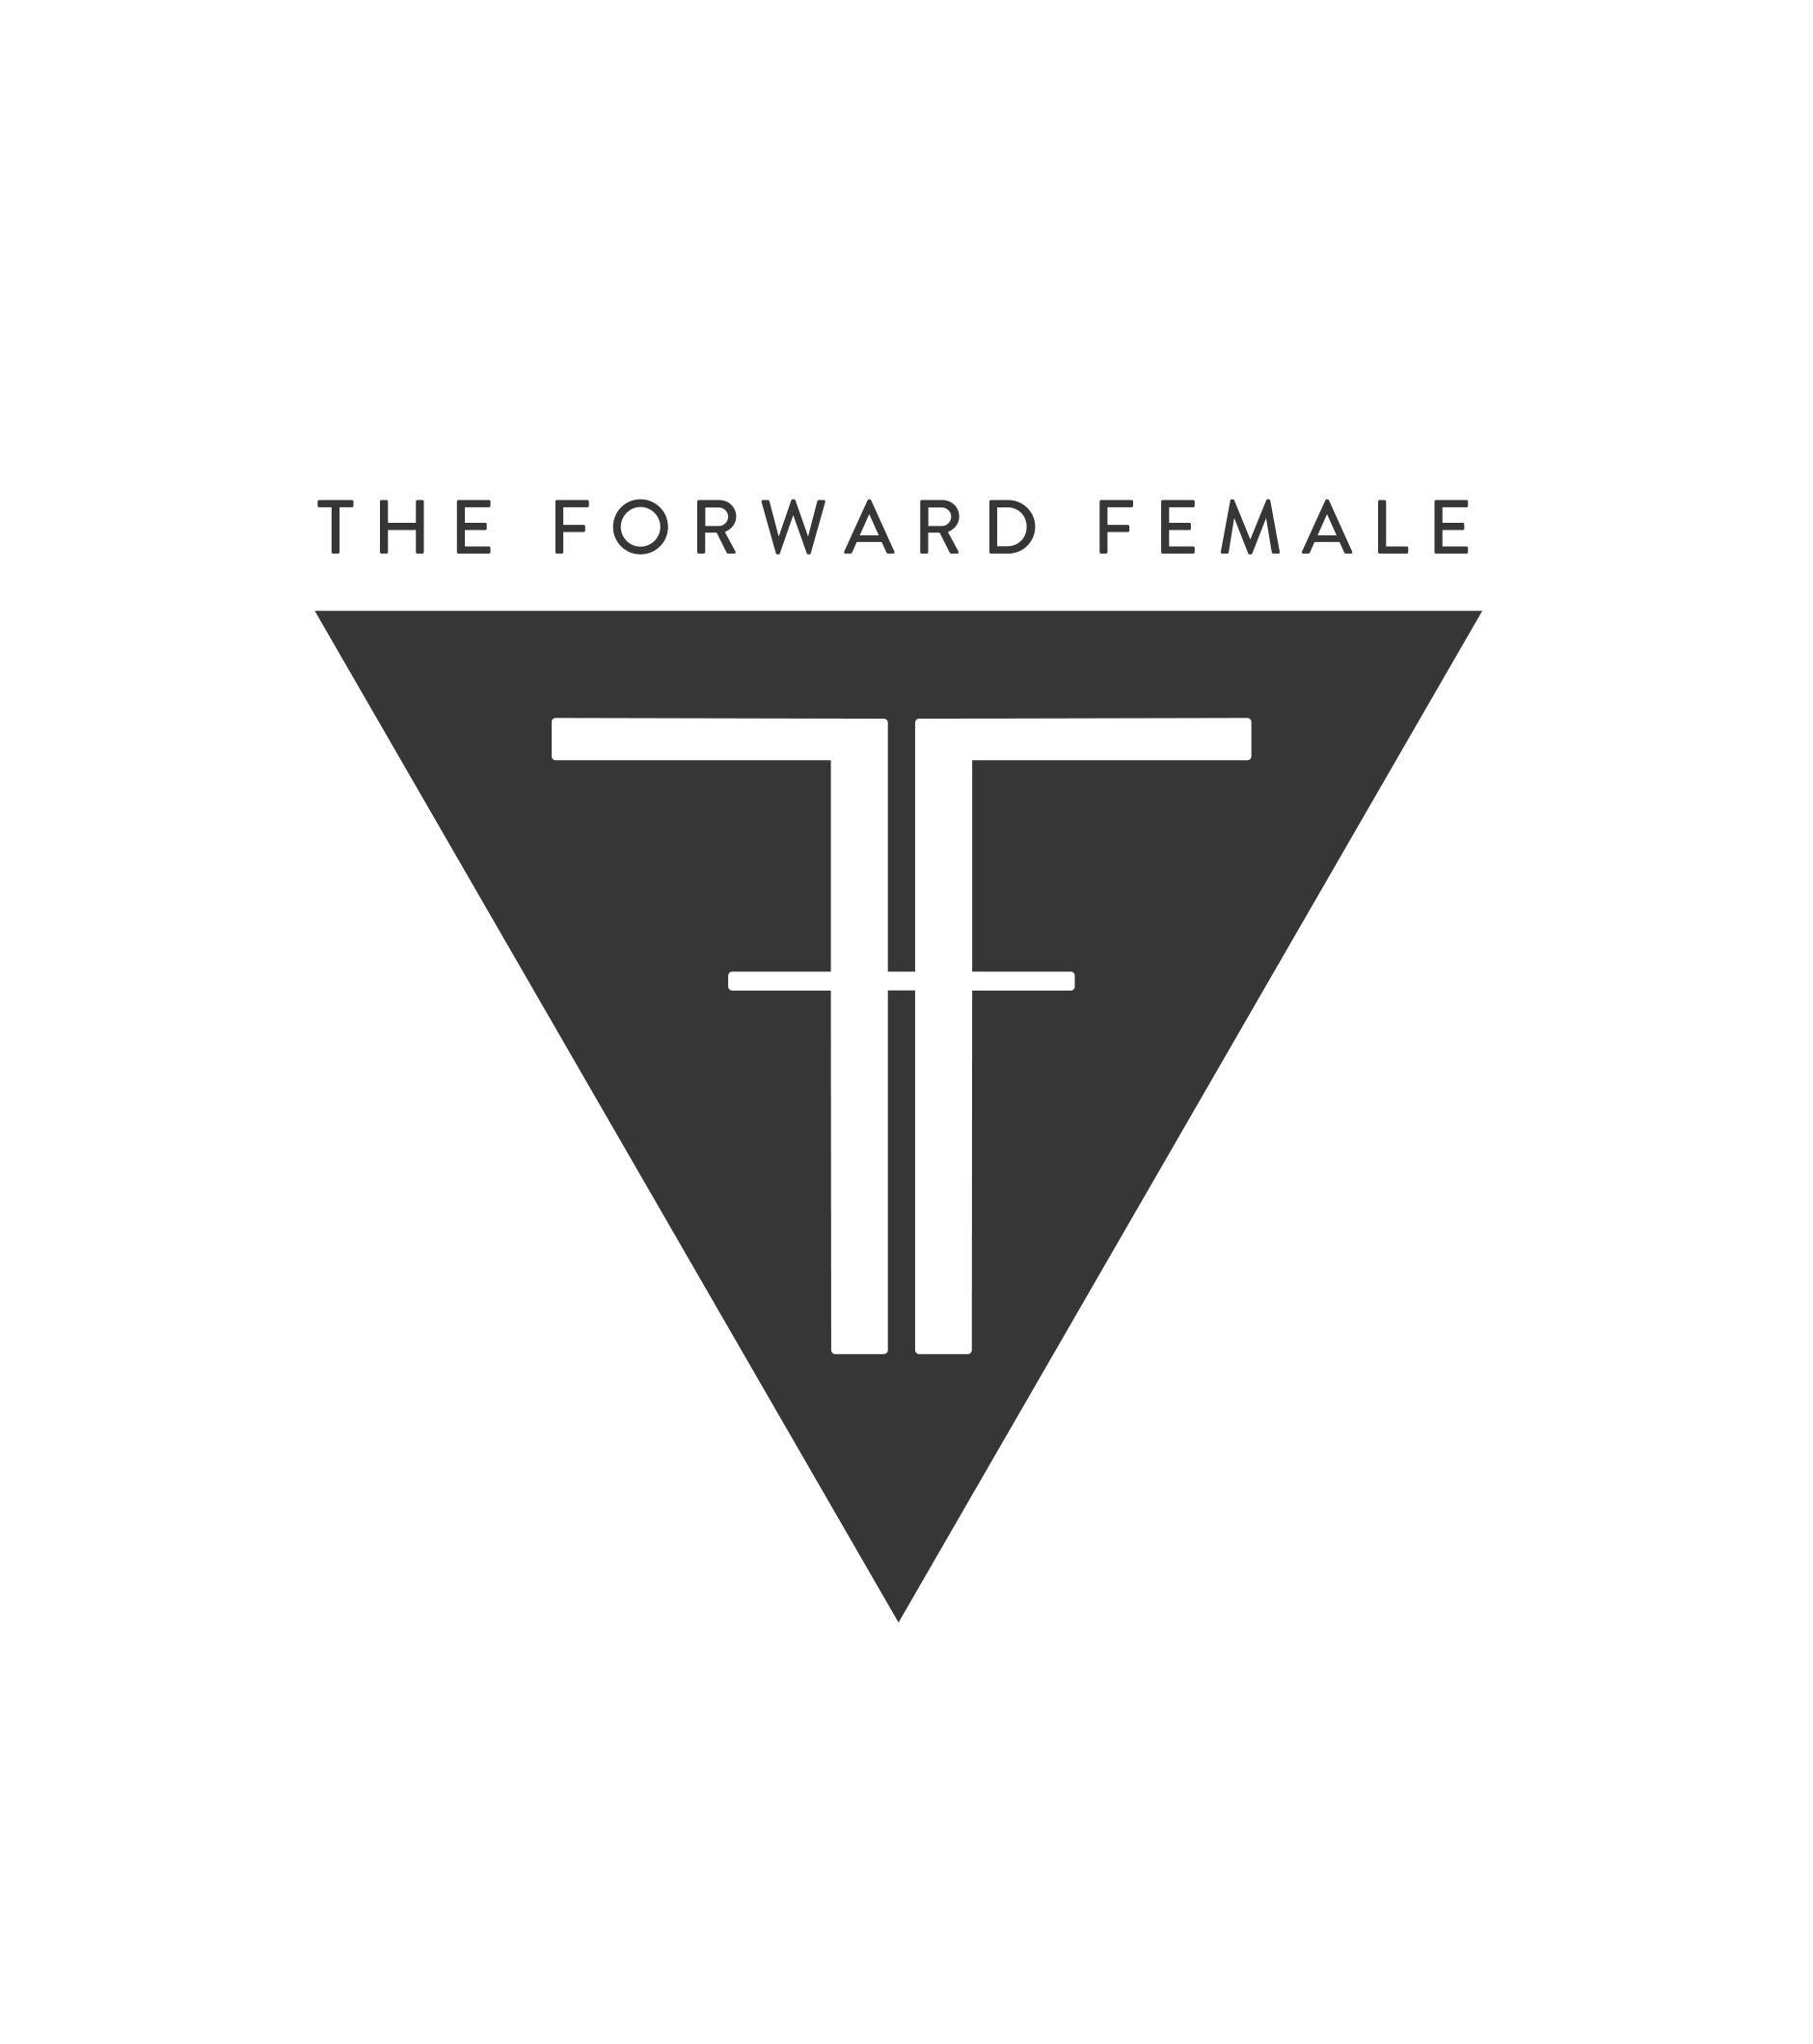 Logo of The Forward Female